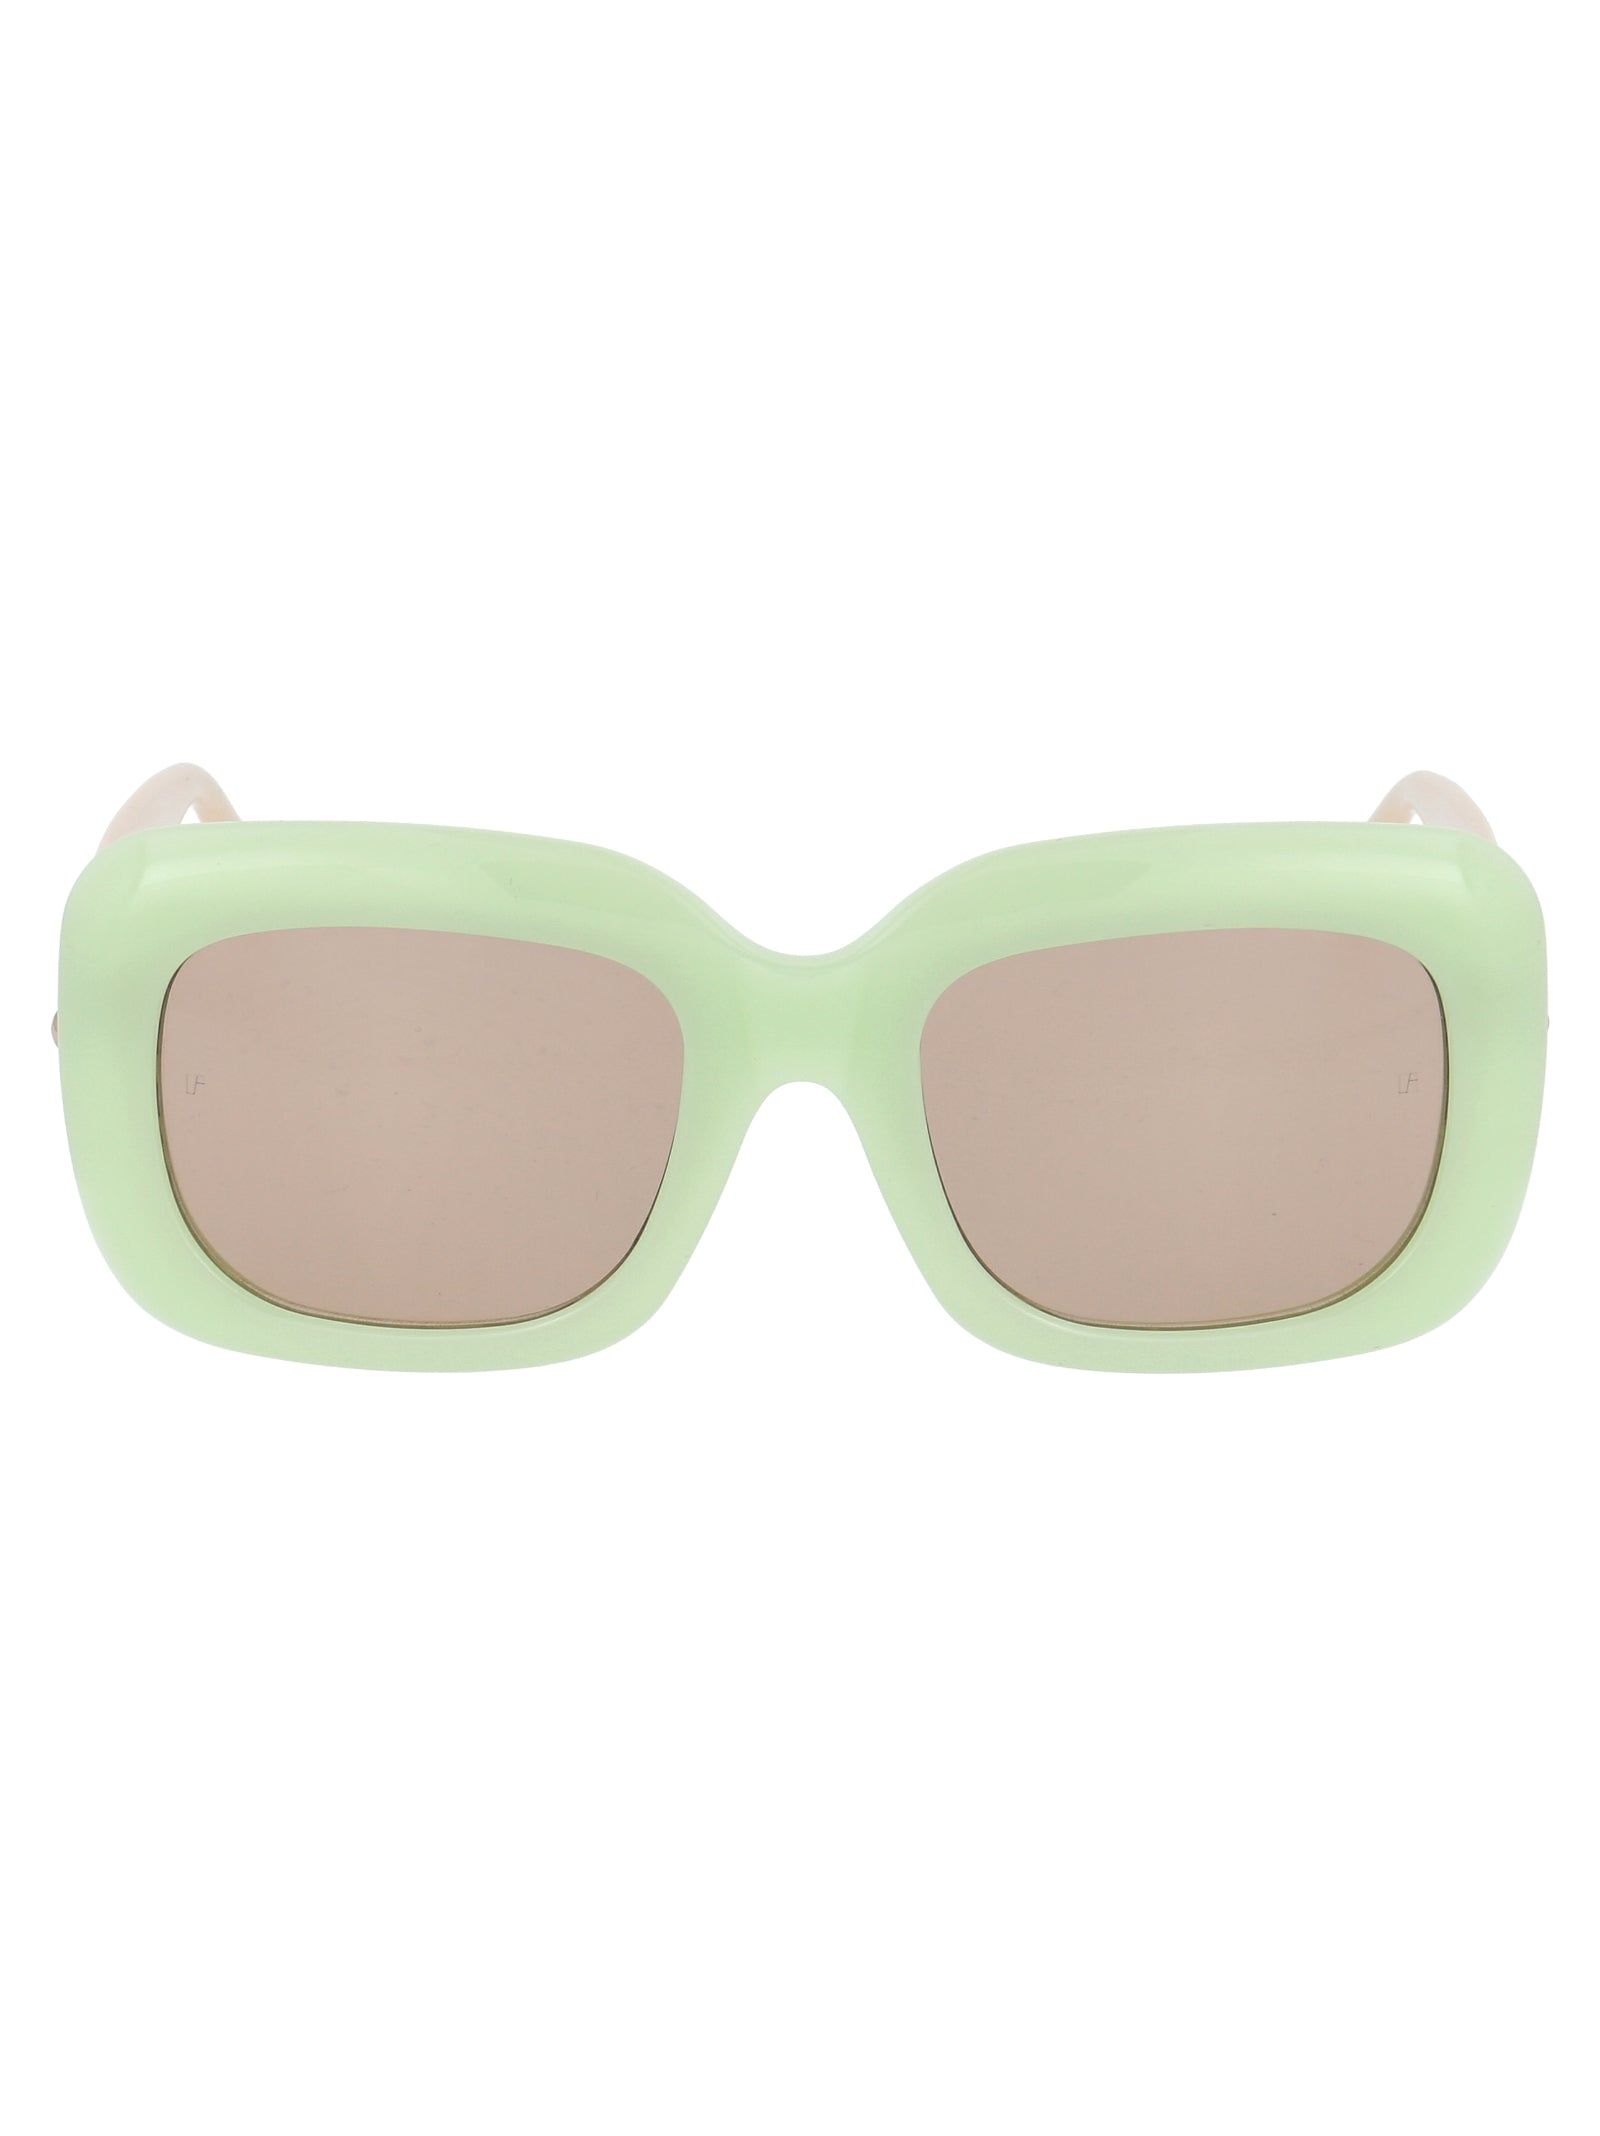 Linda Farrow Sunglasses LINDA FARROW LAVINIA C5 RECTANGULAR SUNGLASSES